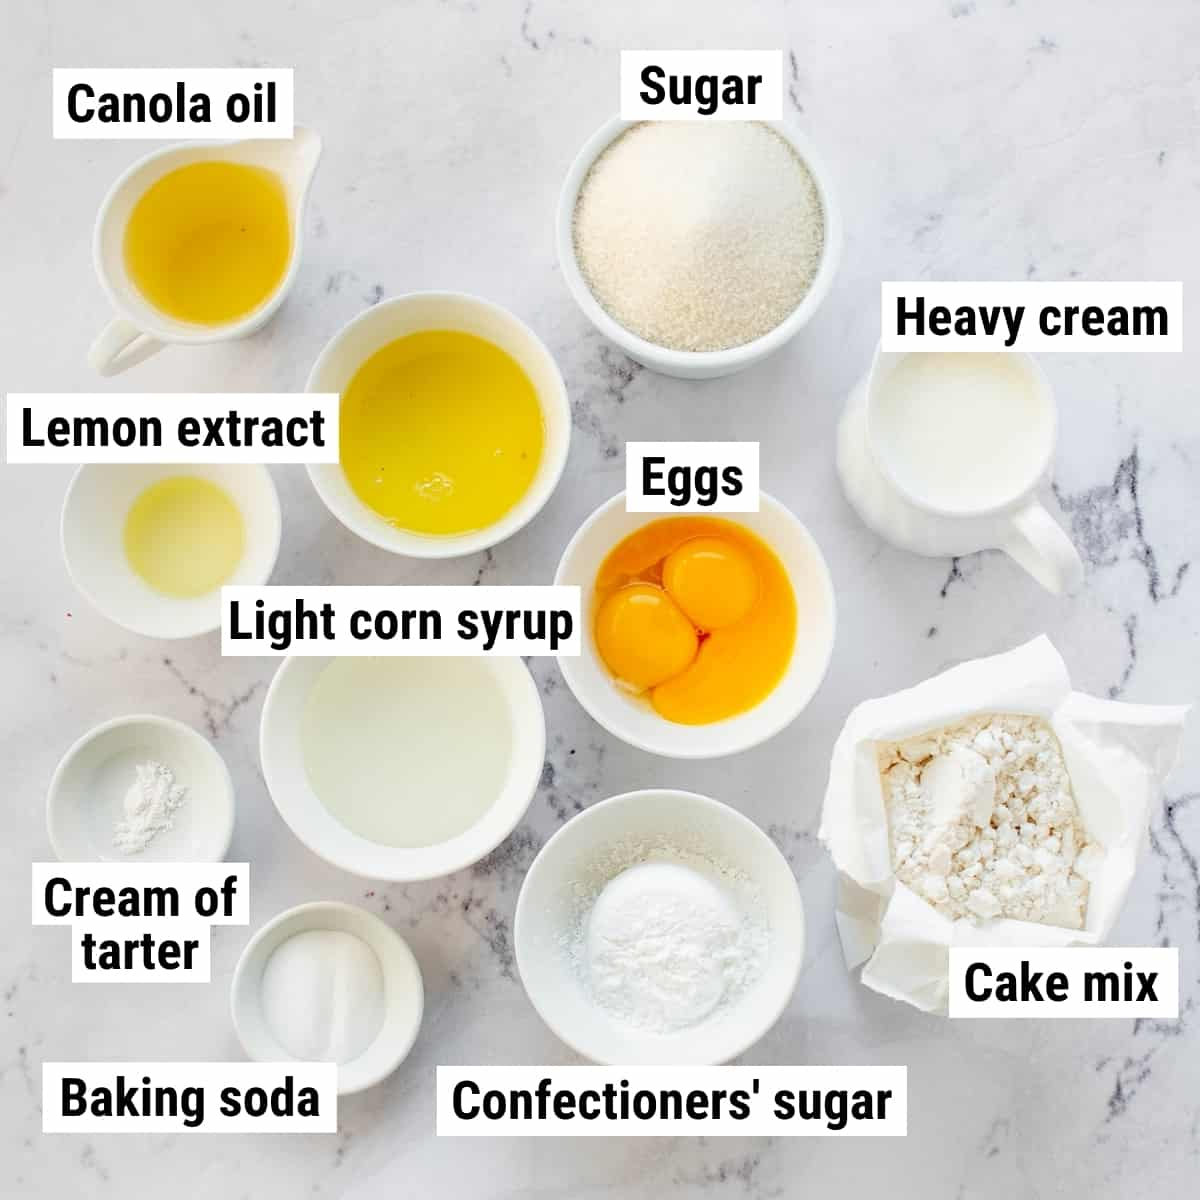 The ingredients to make lemon crunch cake laid out on a table.